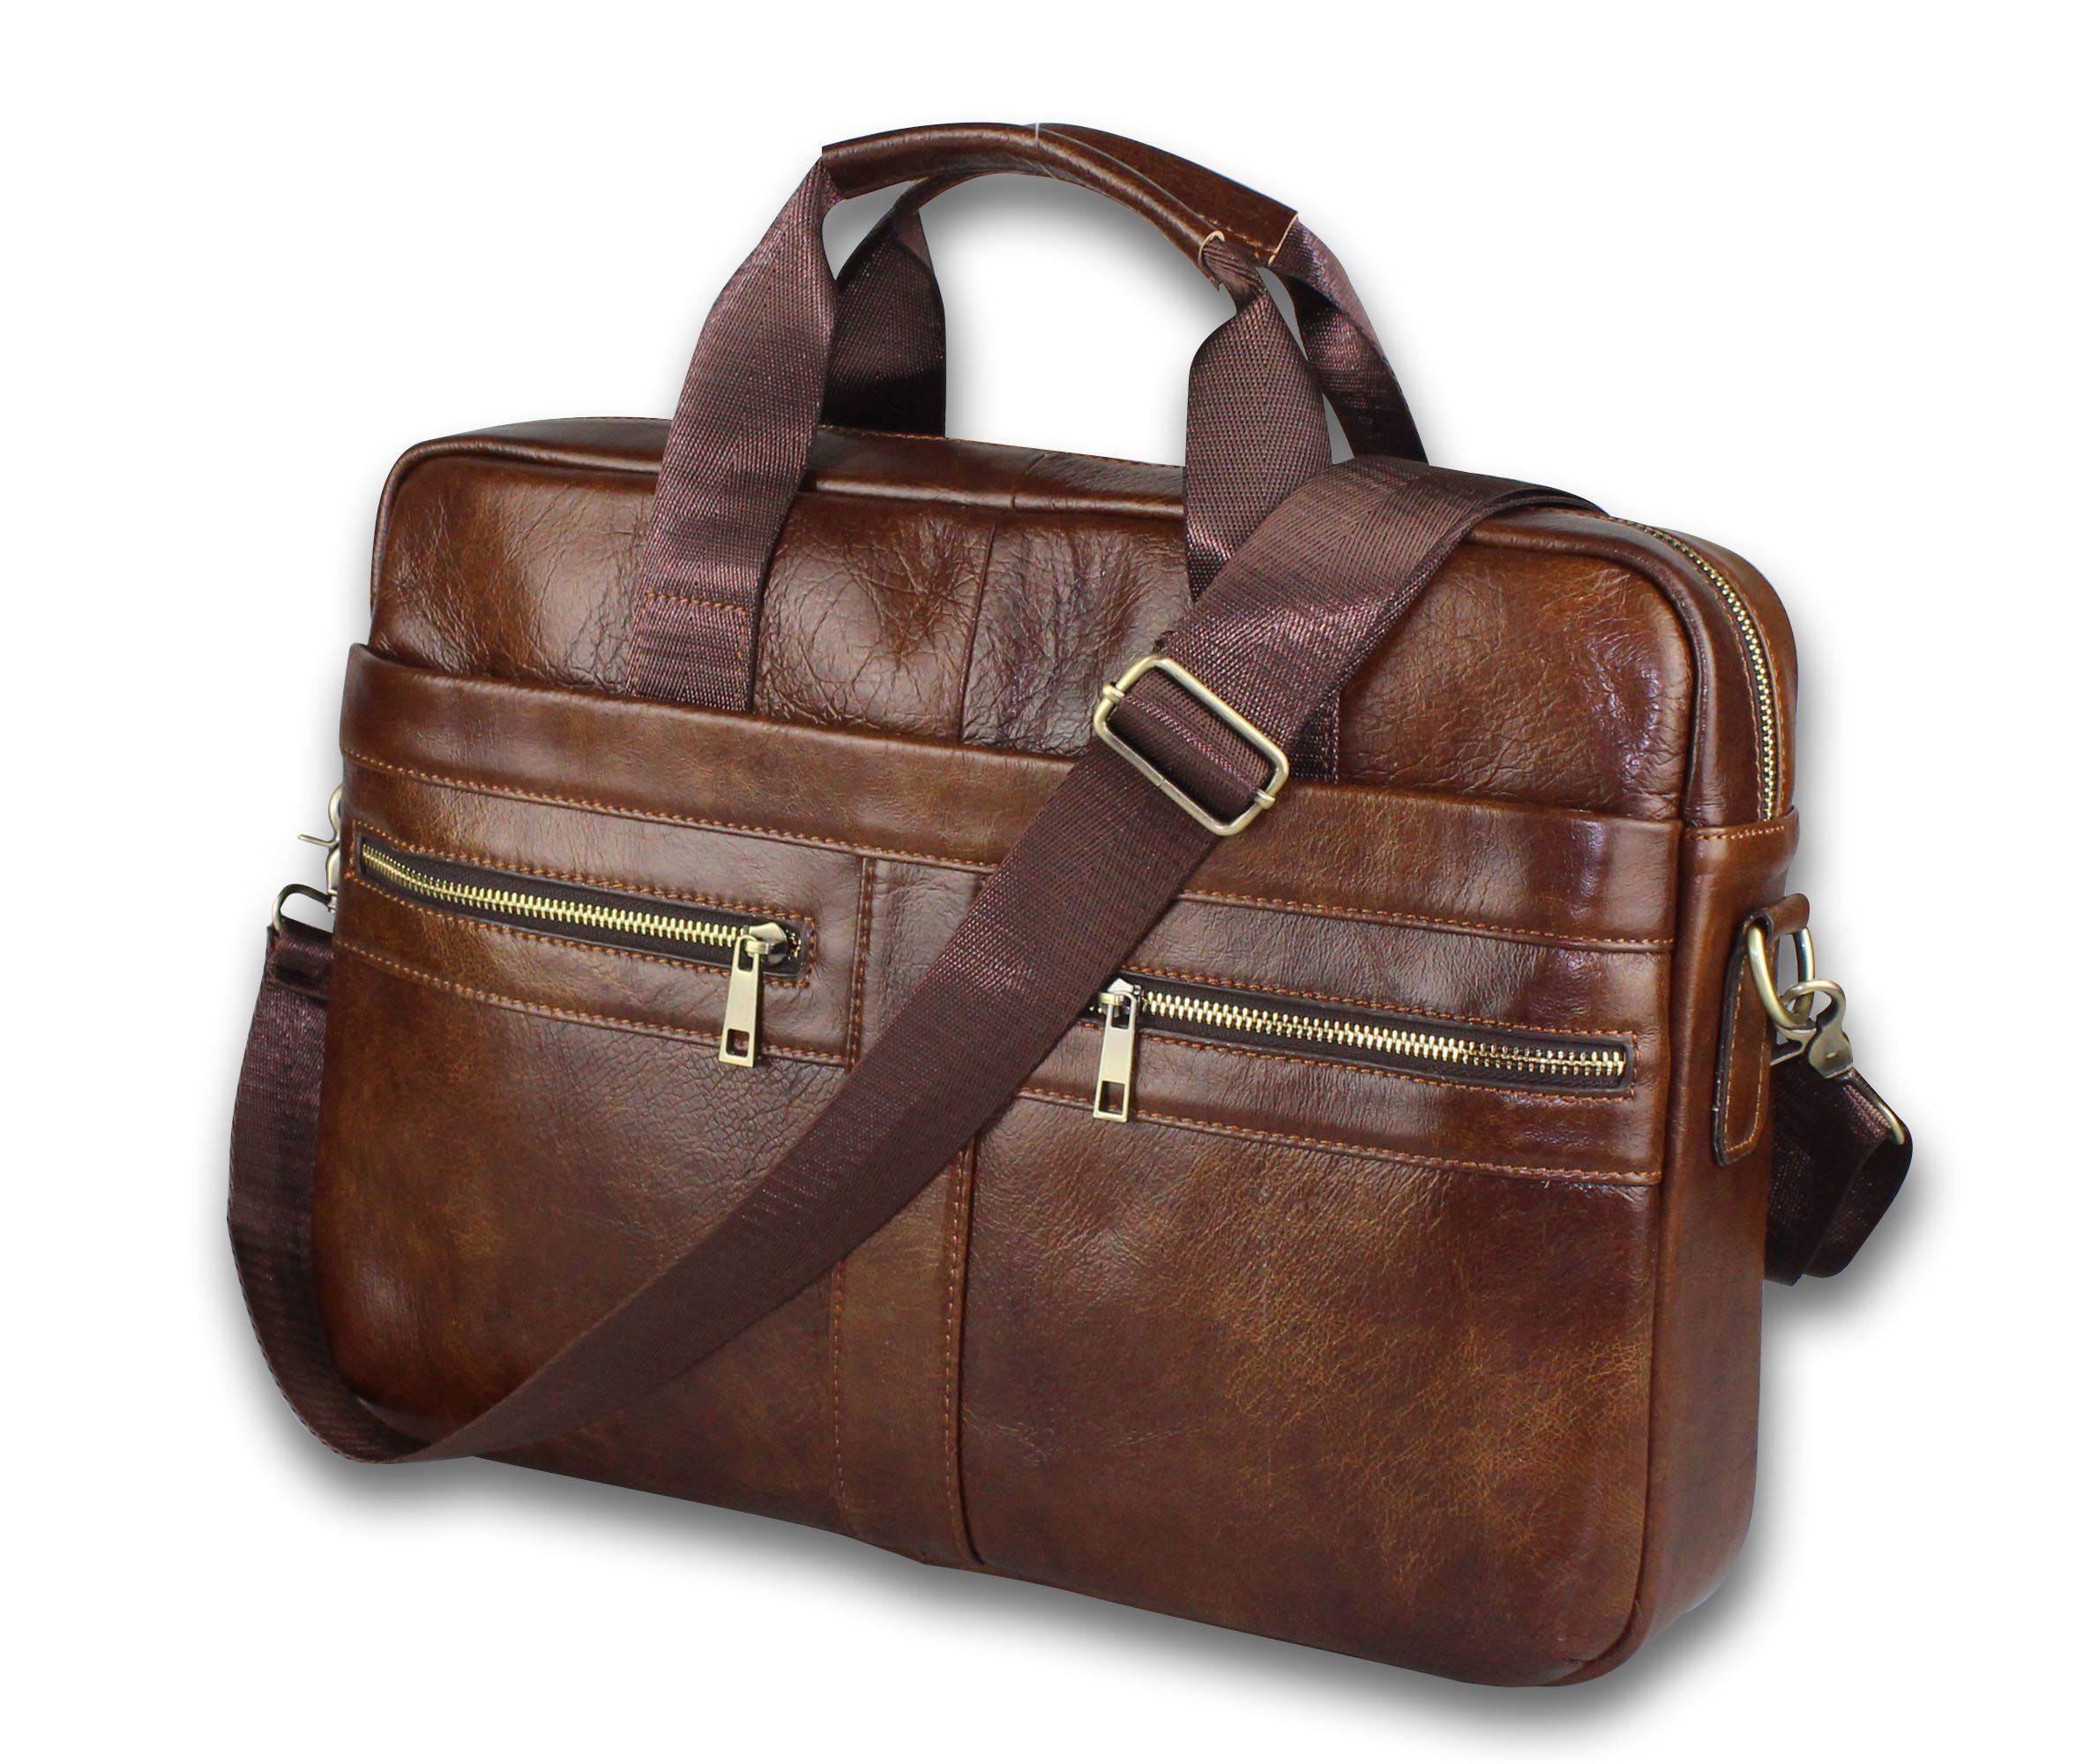 Timeless Genuine Leather Messenger Bag for Men - Gorgeous Superior Brown Carry All Briefcase with Padded Laptop Protection for 14 Inch Computer - Shoulder Satchel or Crossbody Bag w/Adjustable Strap by BRA1NST0RM